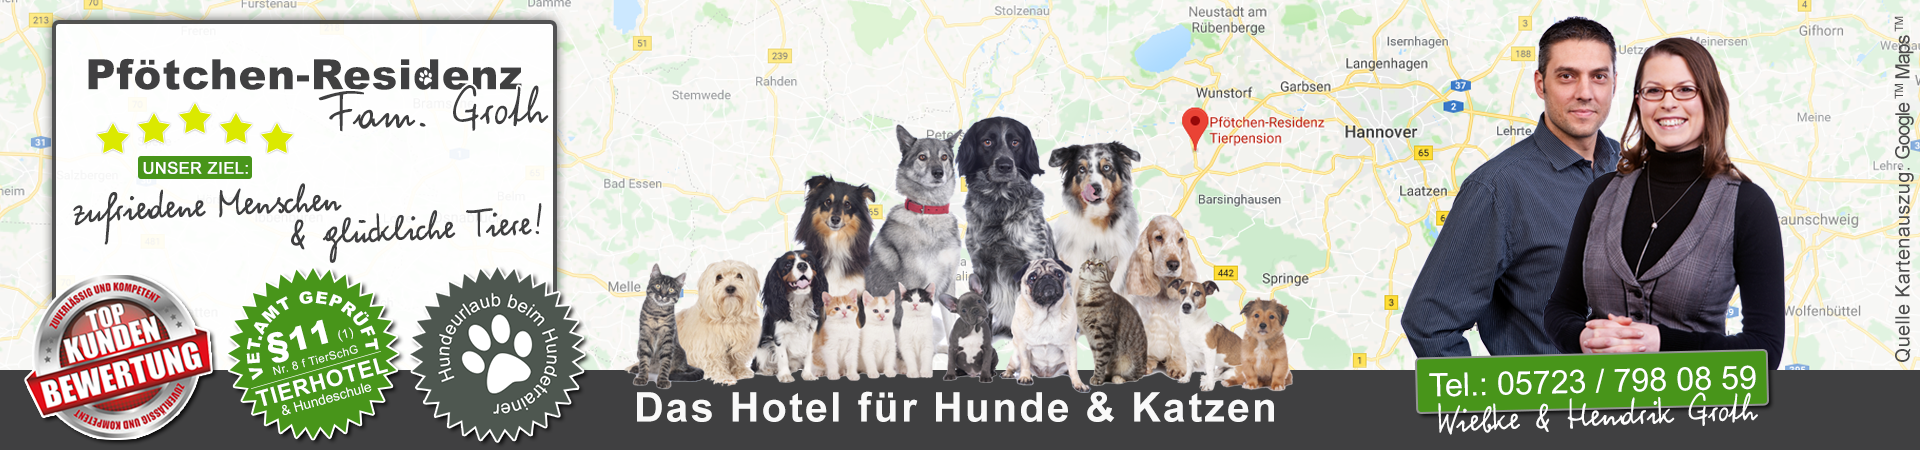 hundepension hannover header